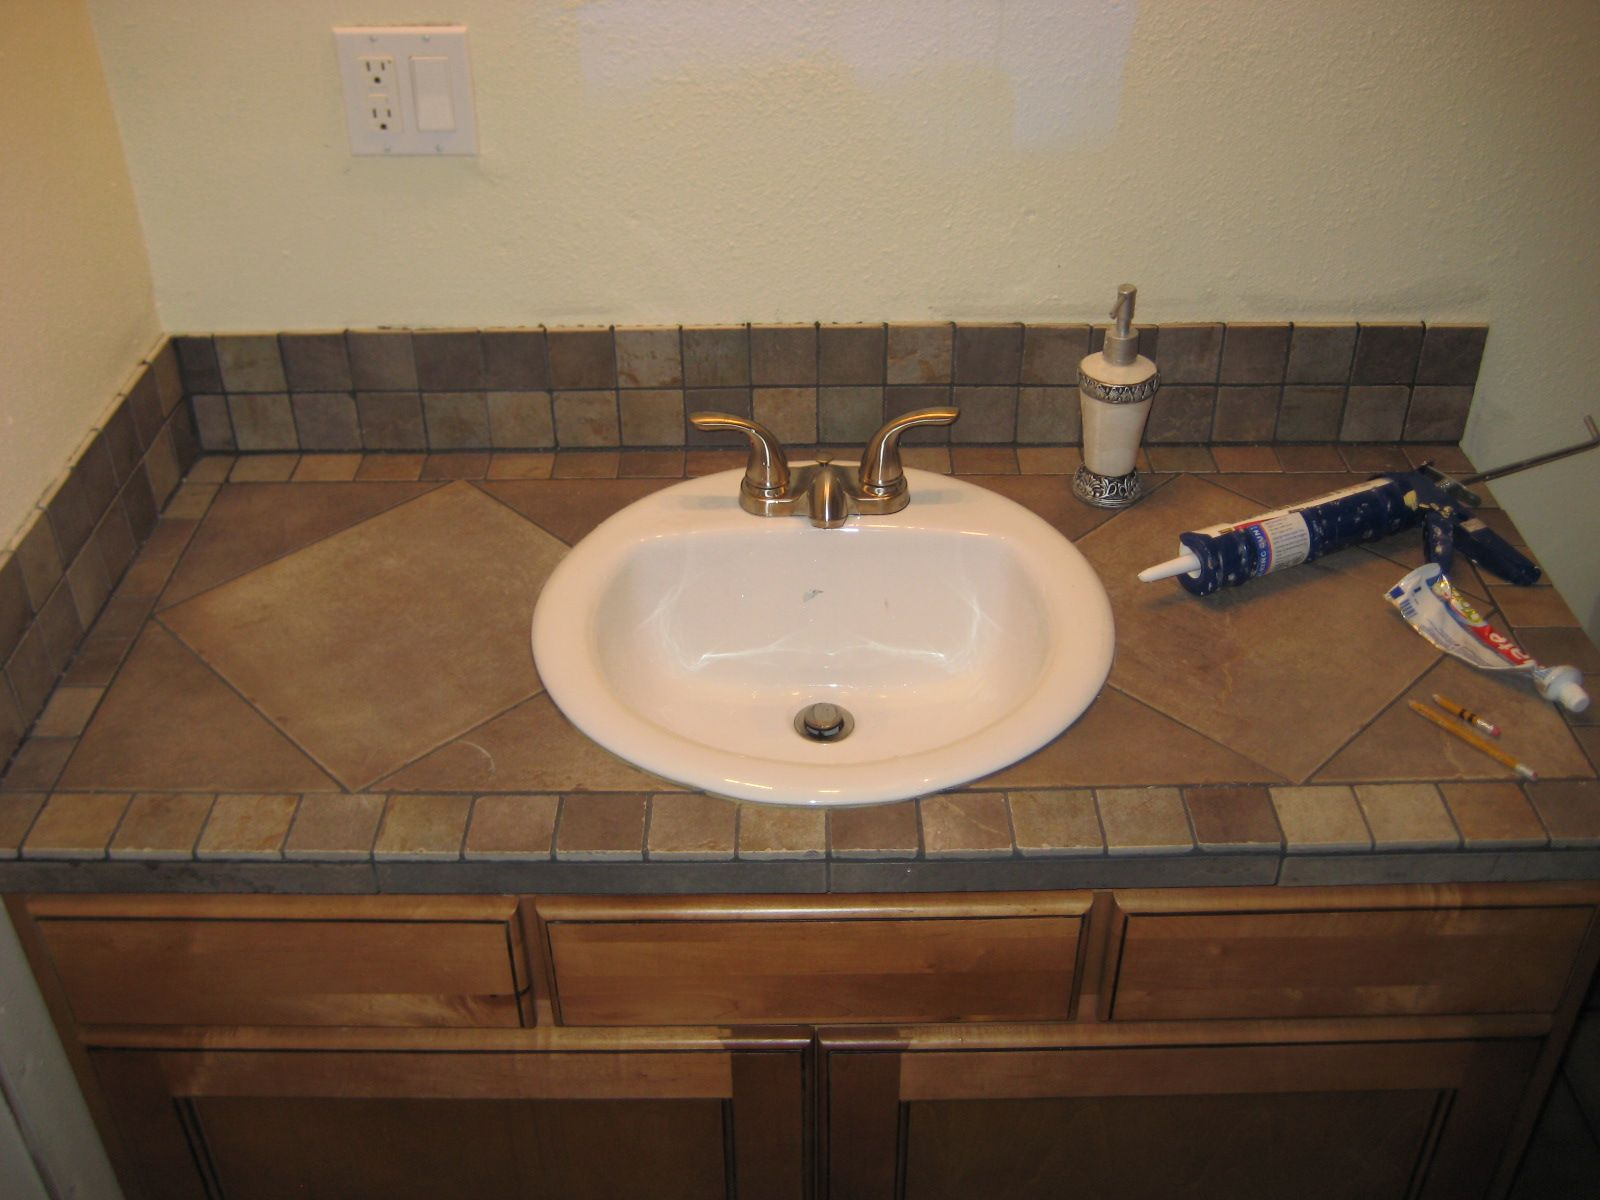 Bathroom Vanity Tile Countertop Countertops Tiled